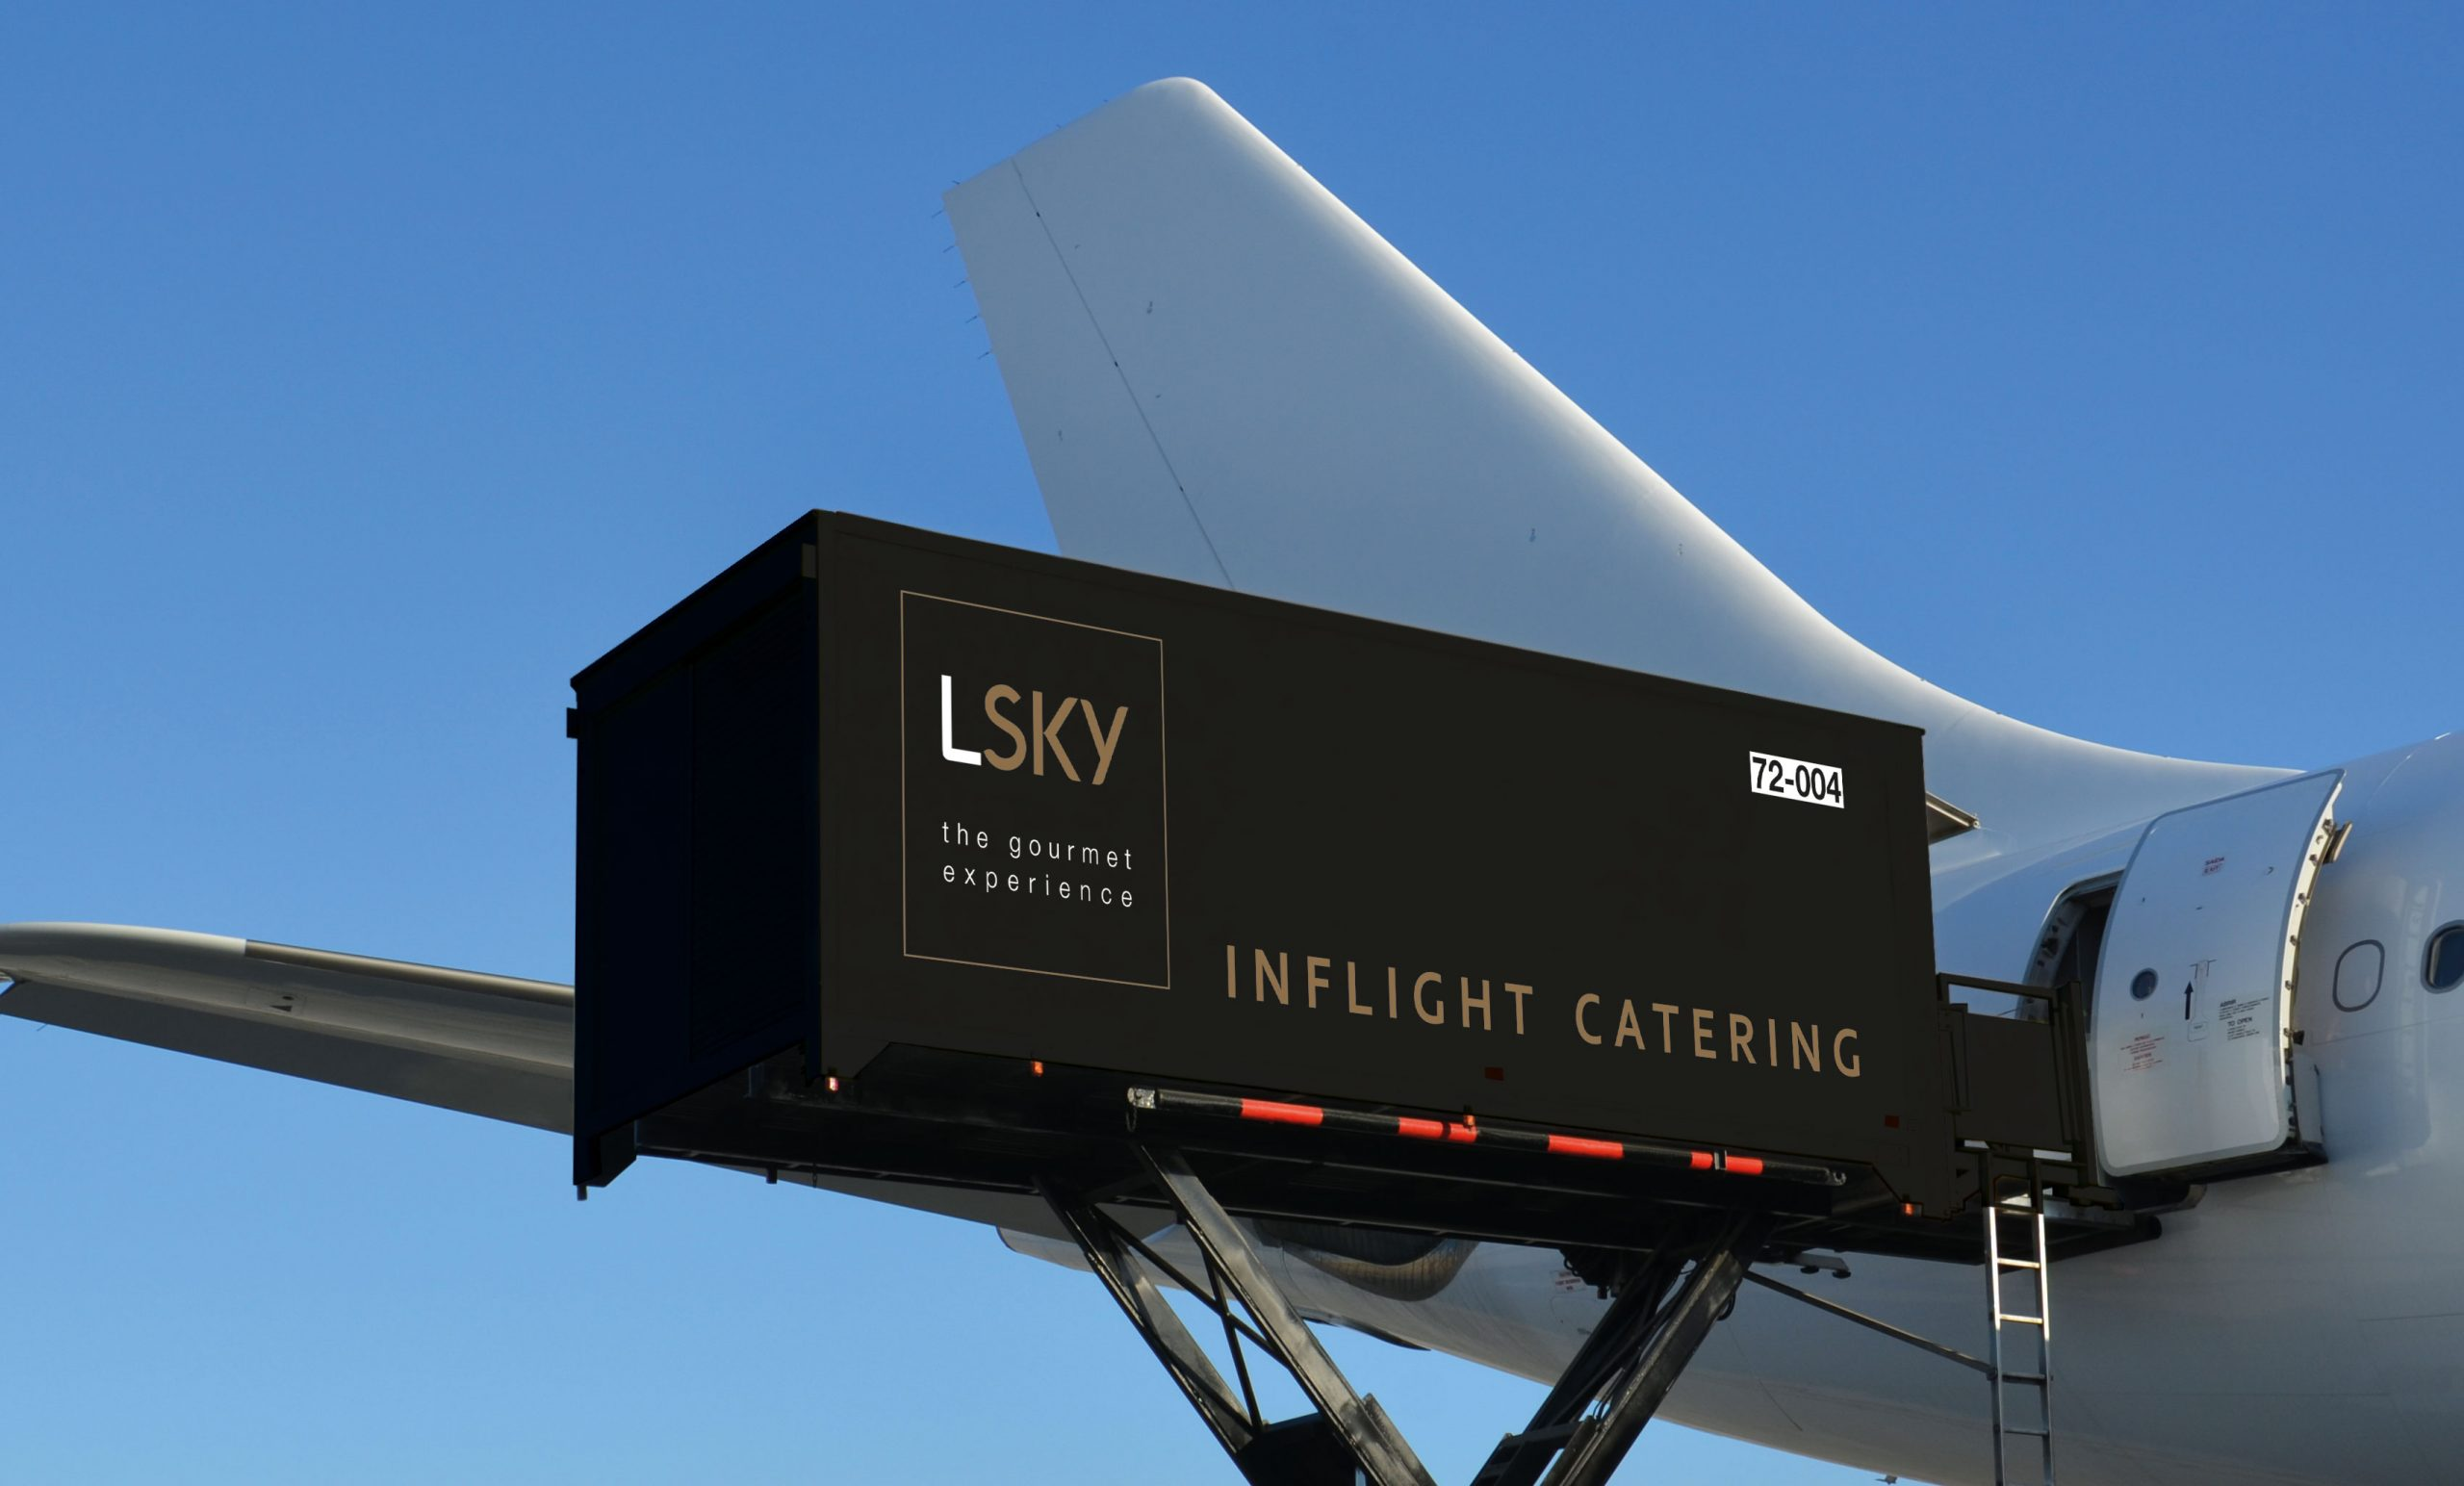 LSKY launches new visual identity